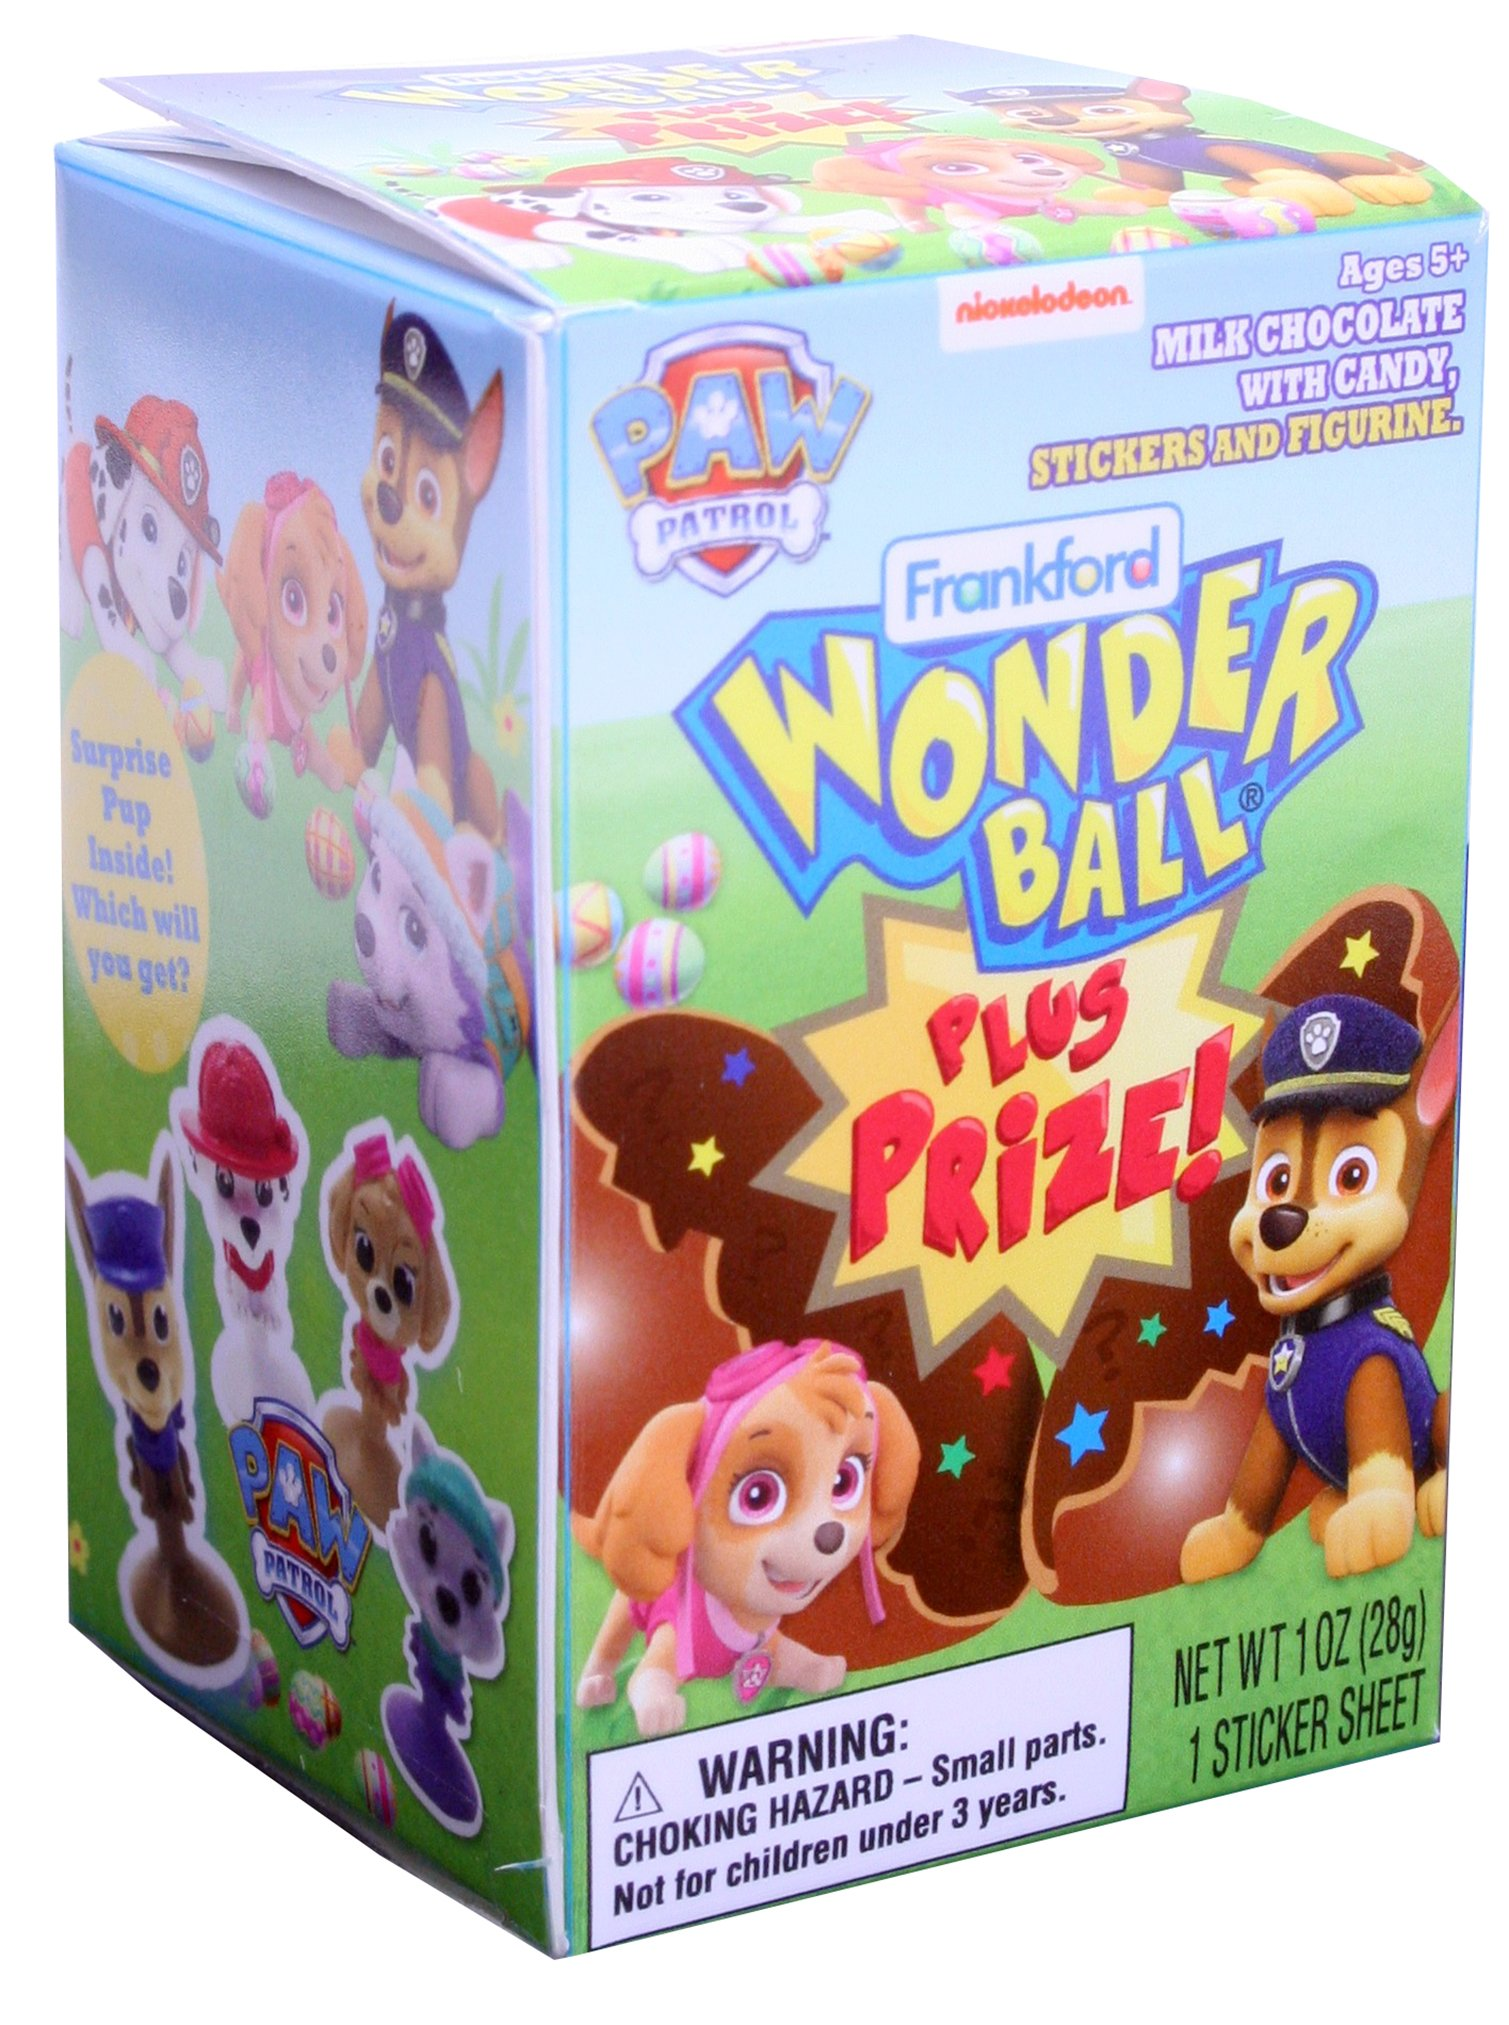 Paw Patrol Wonder Ball With Toys Candy Store Albanese